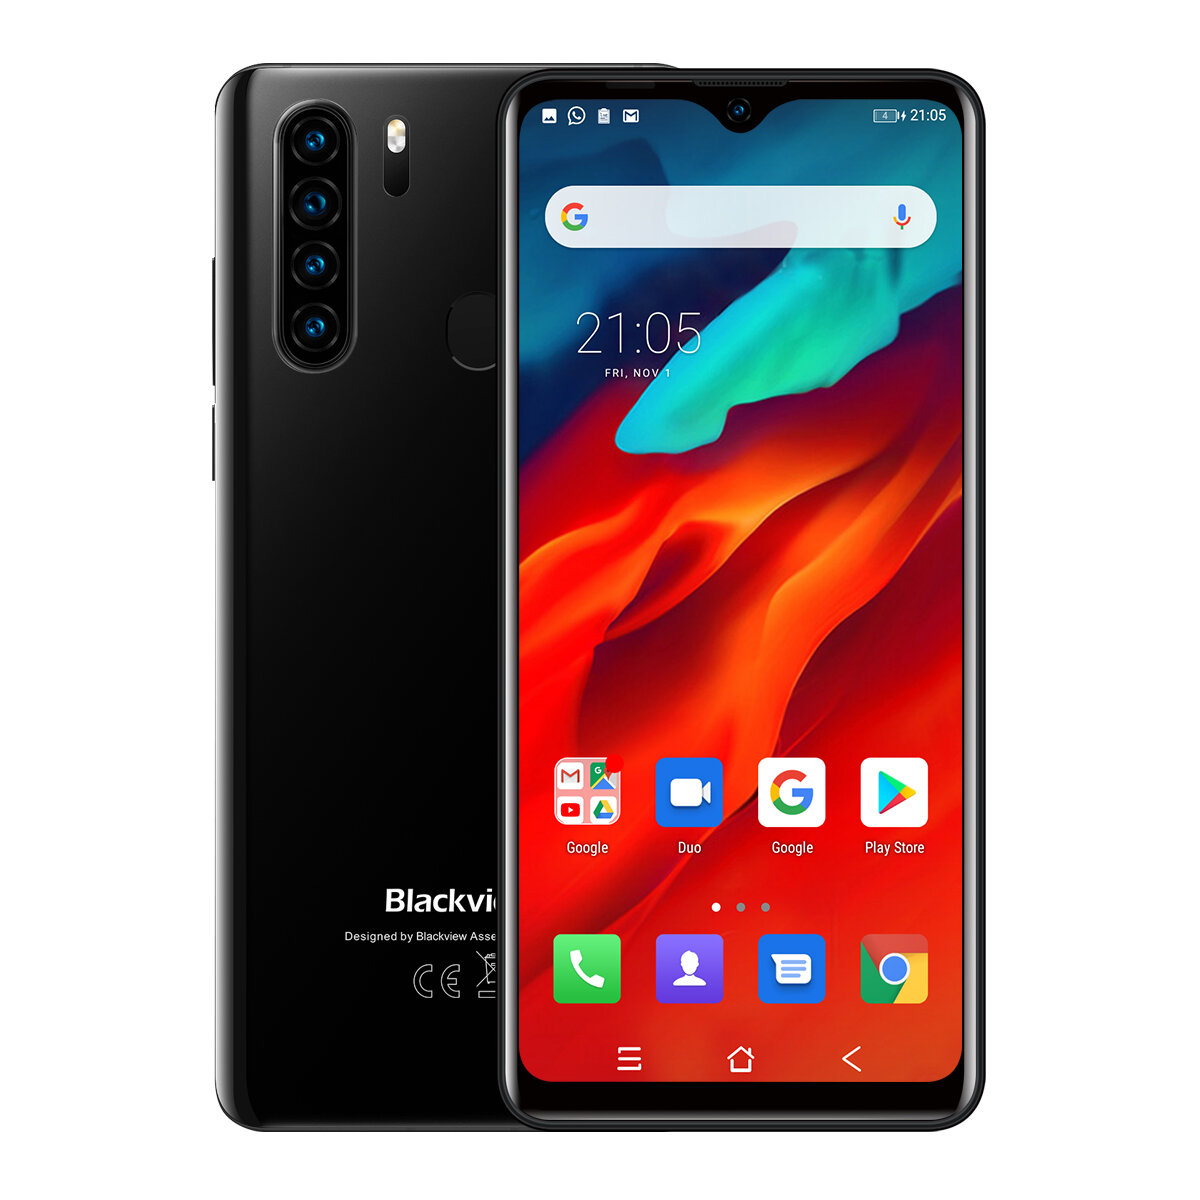 Blackview A80 Pro Global Bands 6.49 inch HD+ Waterdrop Display 4200mAh Android 9.0 13MP Quad Rear Camera 4GB 64GB Helio P25 Octa Core 4G Smartphone - Black